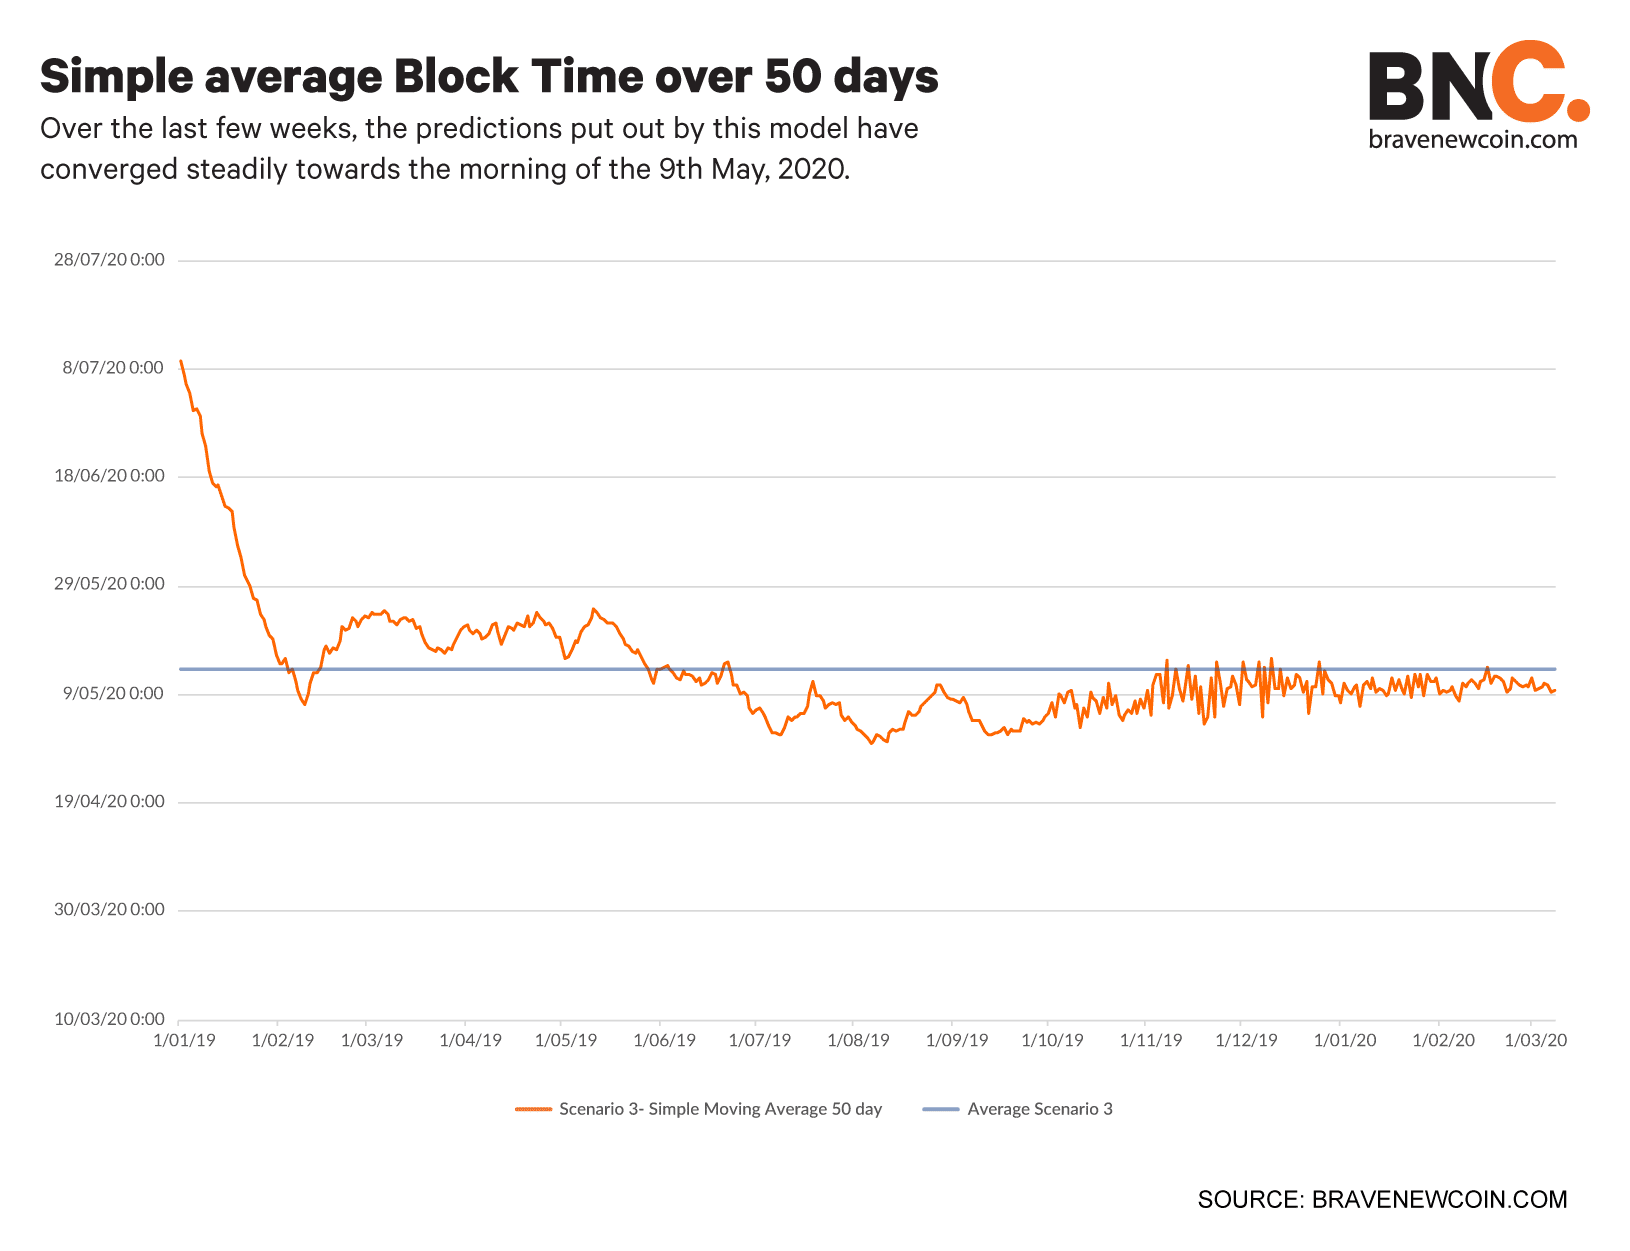 Simple-average-block-time-over-50-days (2)